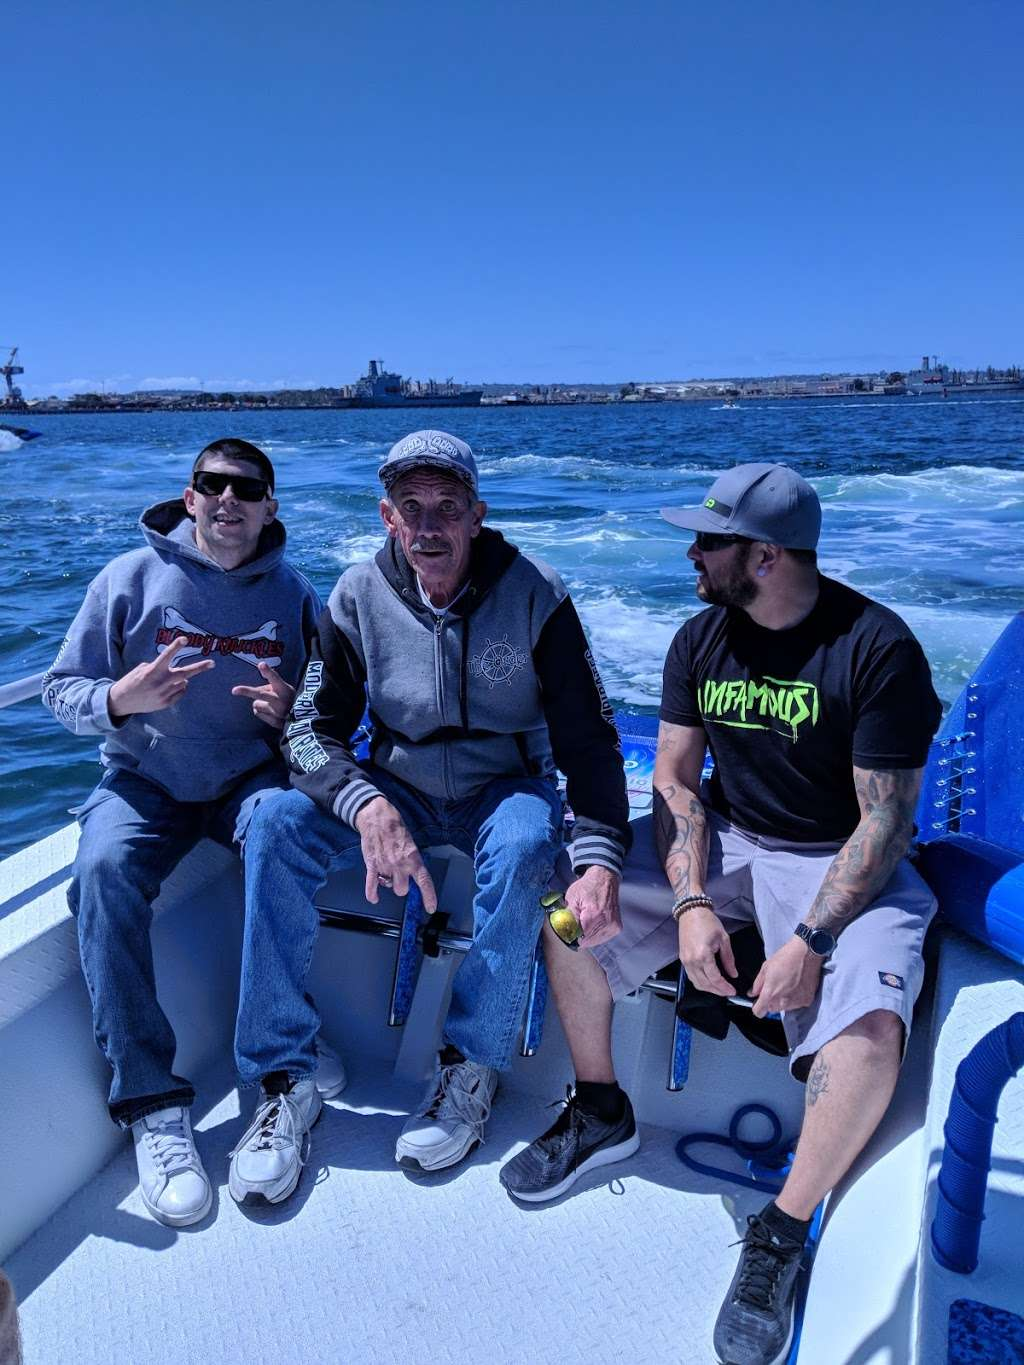 SeaQuest Water Adventures - travel agency  | Photo 8 of 10 | Address: Dock K-M, 955 Harbor Island Dr Gate 4, San Diego, CA 92101, USA | Phone: (844) 669-3483